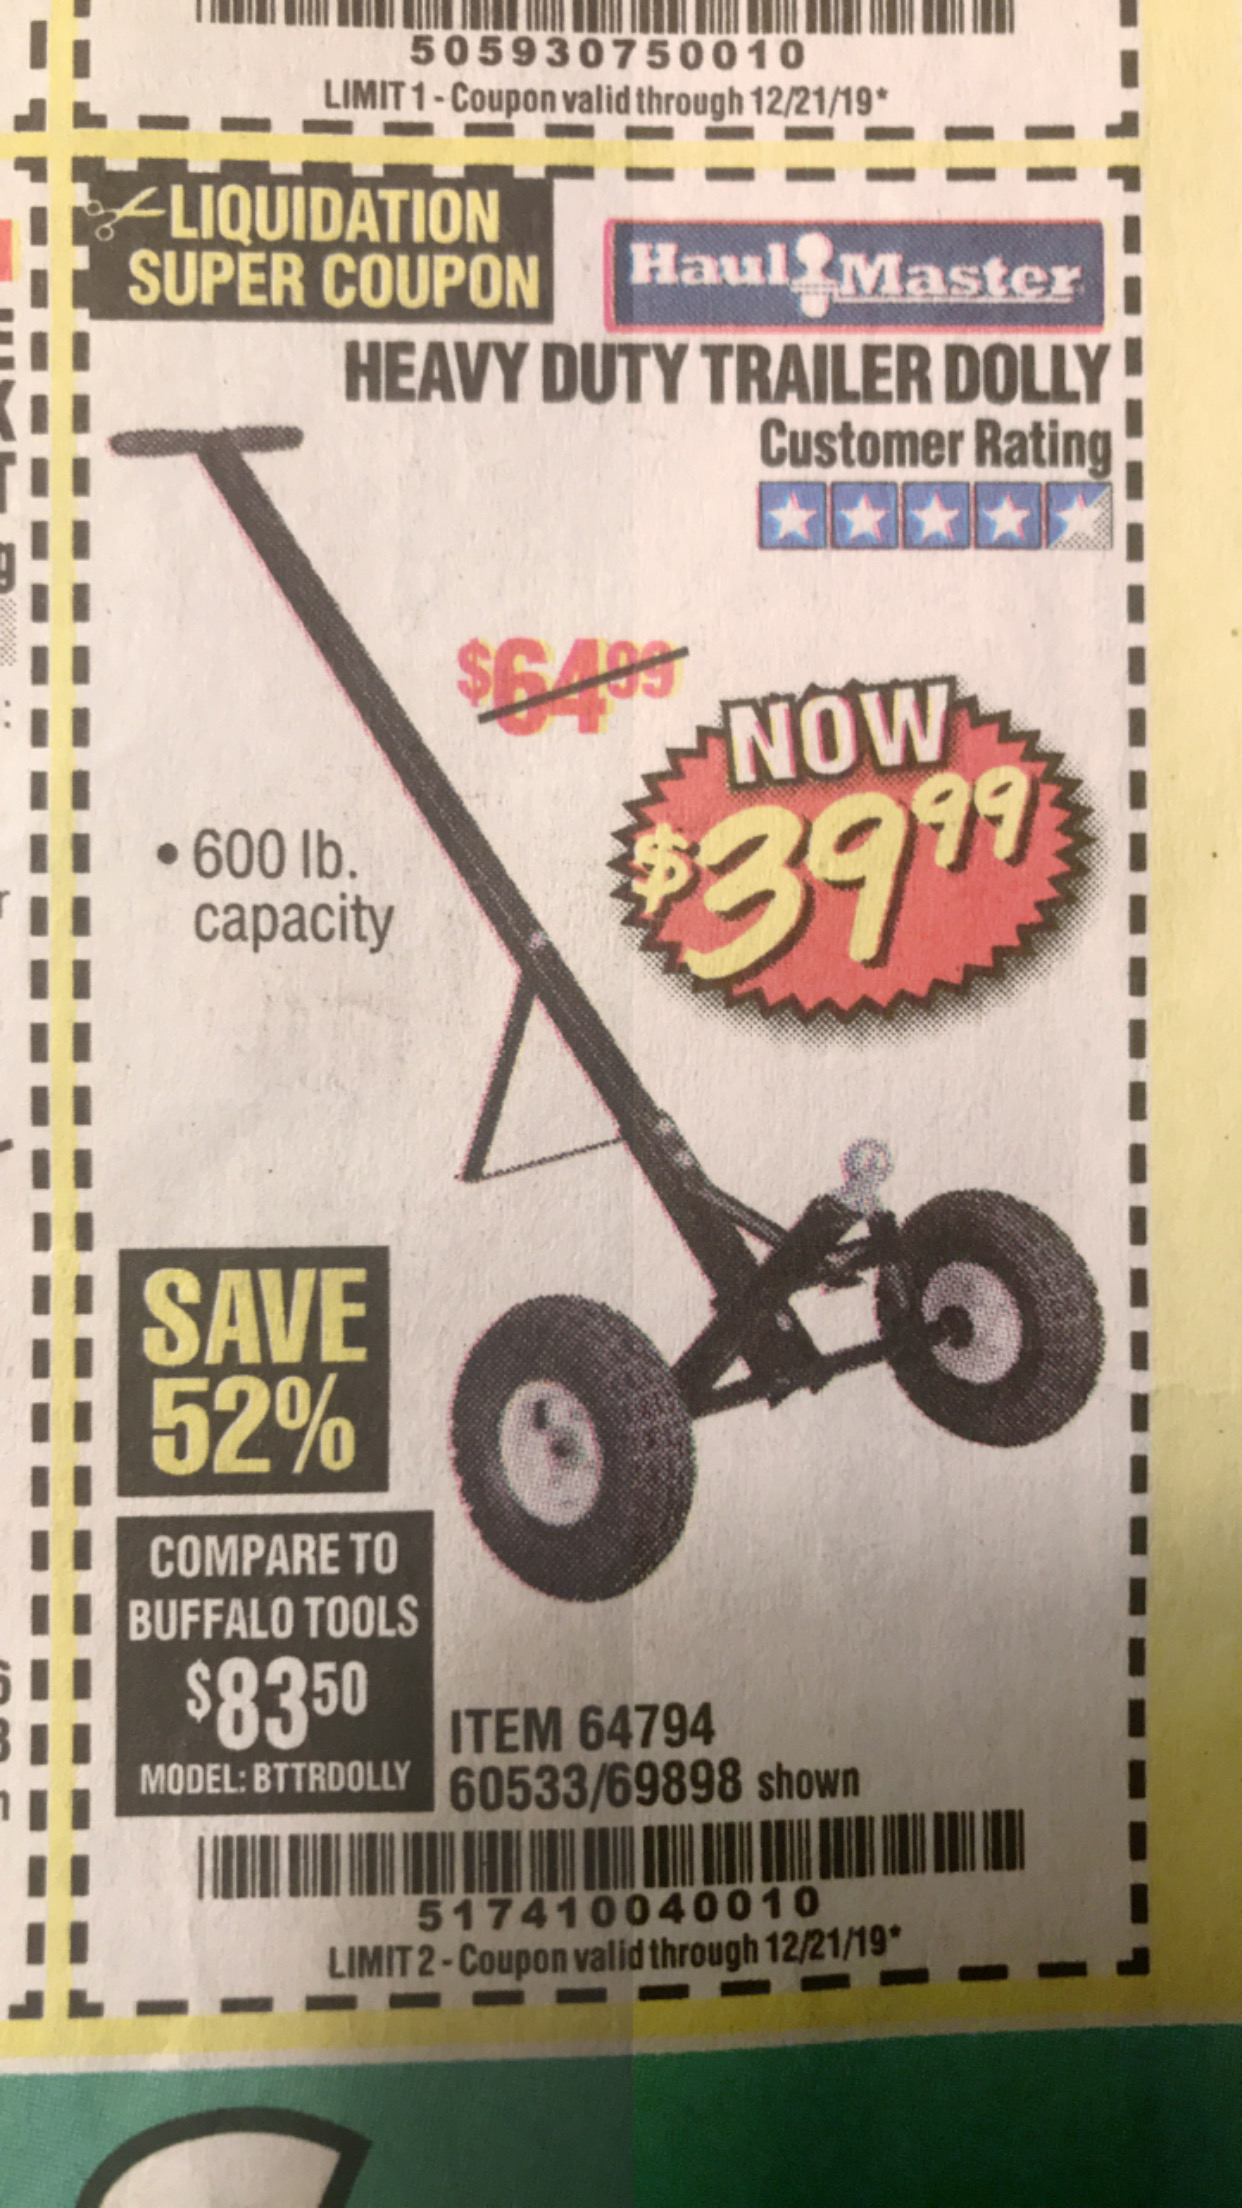 Harbor Freight HEAVY DUTY TRAILER DOLLY coupon